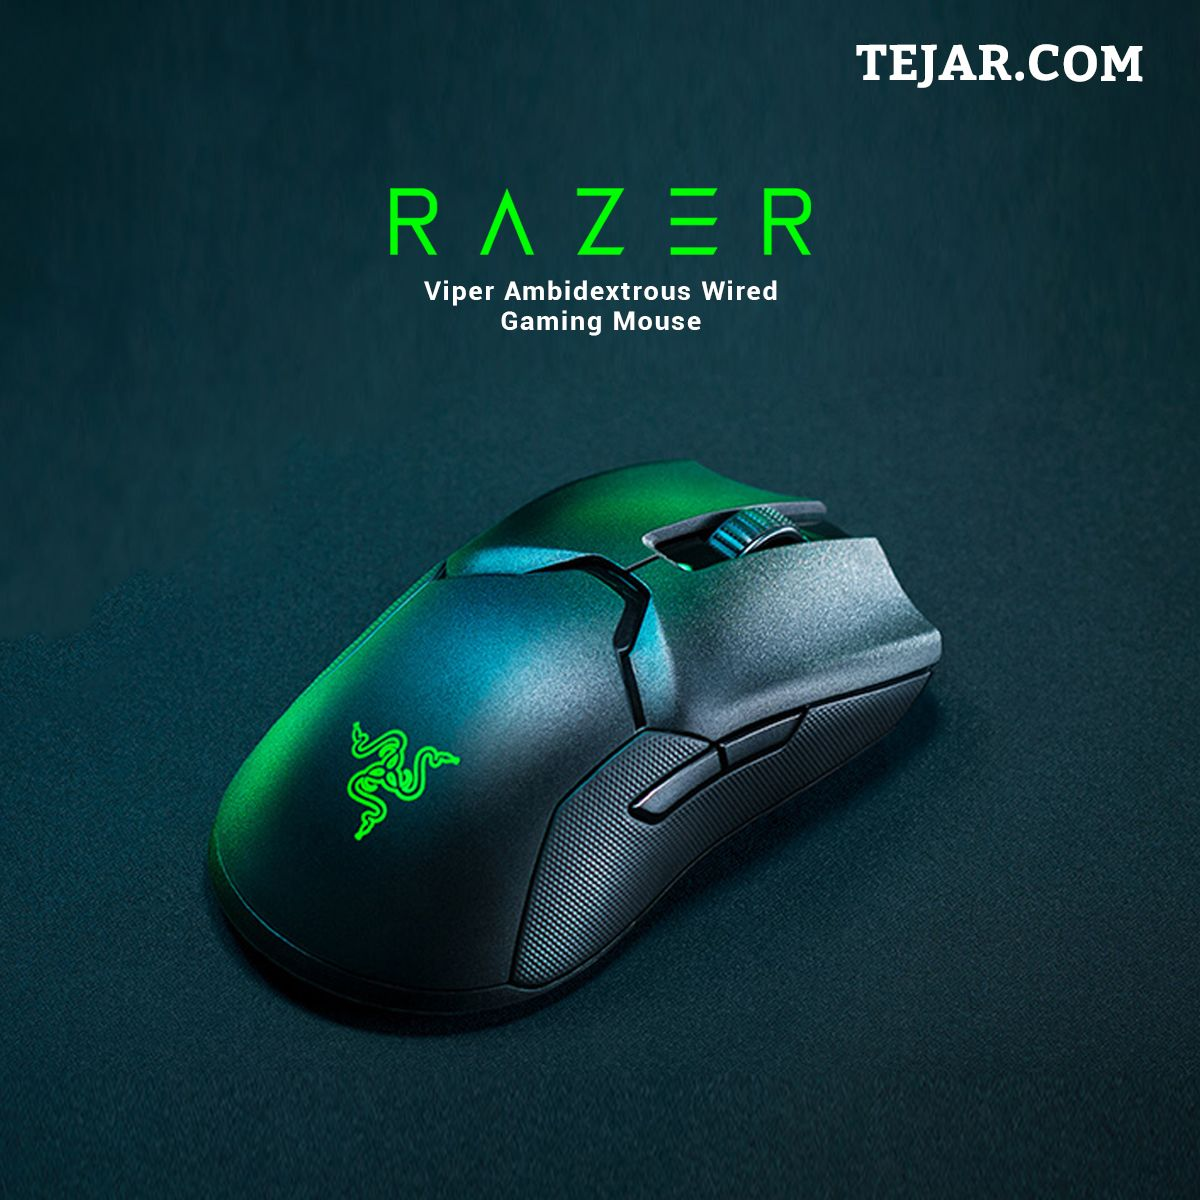 Razer Viper Ambidextrous Wired Gaming Mouse in 2020